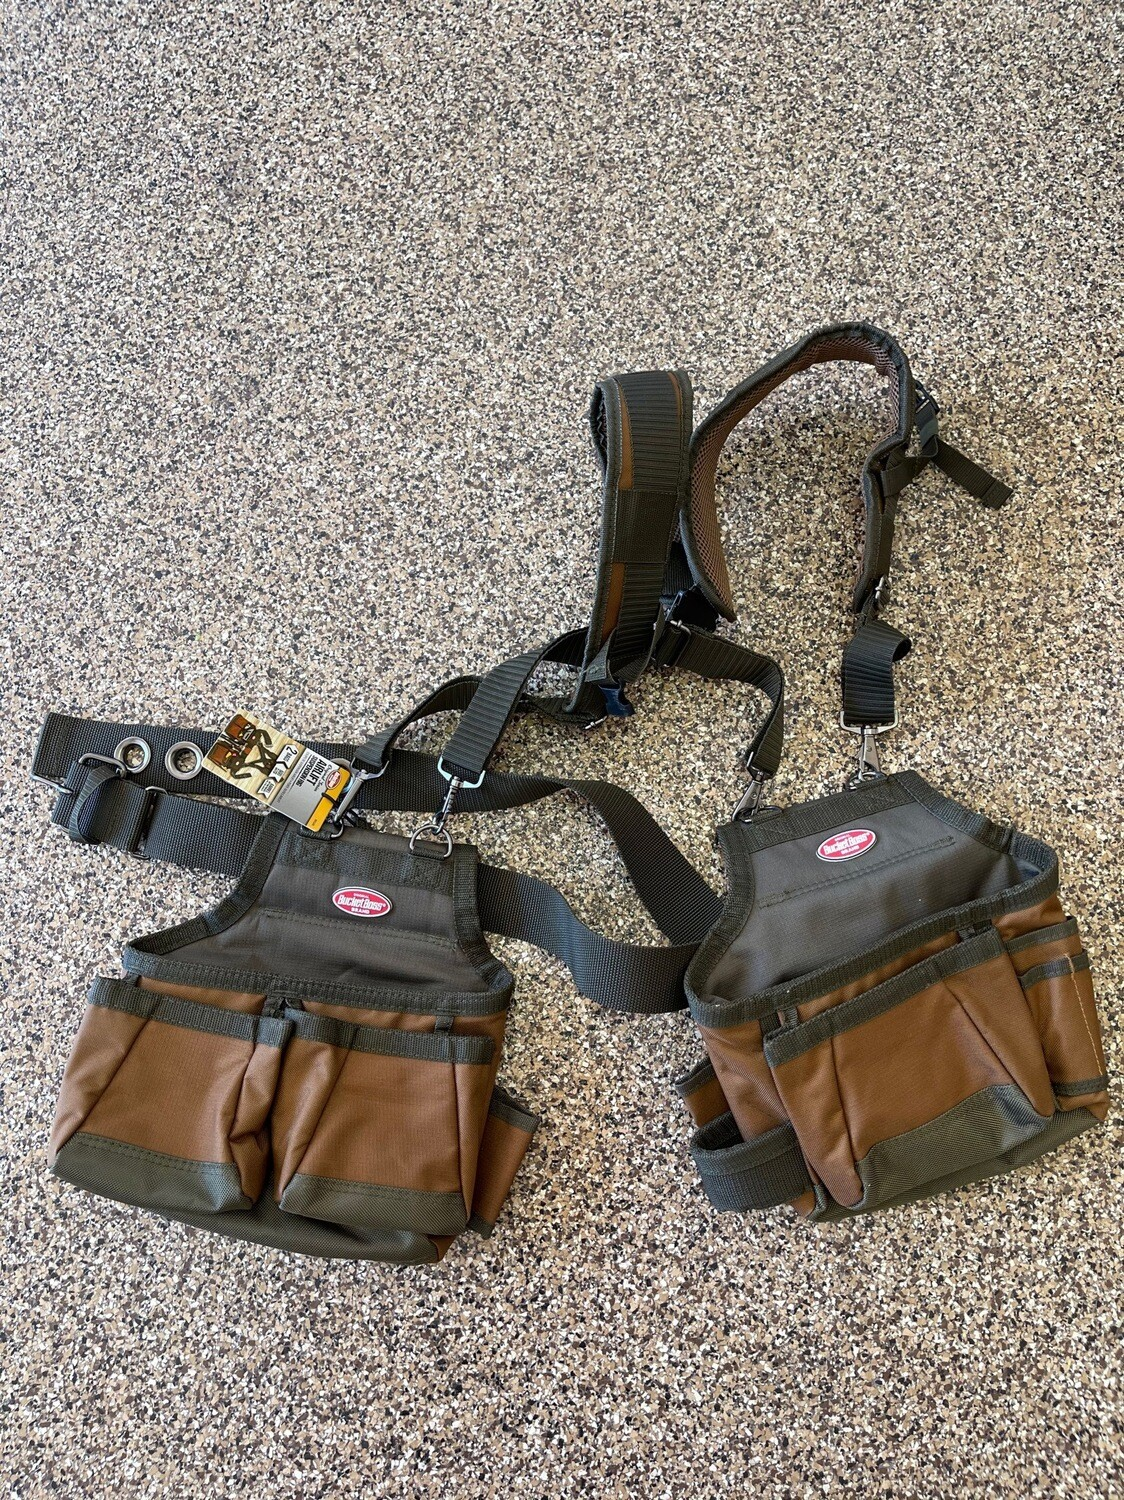 Construction Tool Belt Pouch Suspenders Carpenter Vest AirLift Suspension Rig brand new